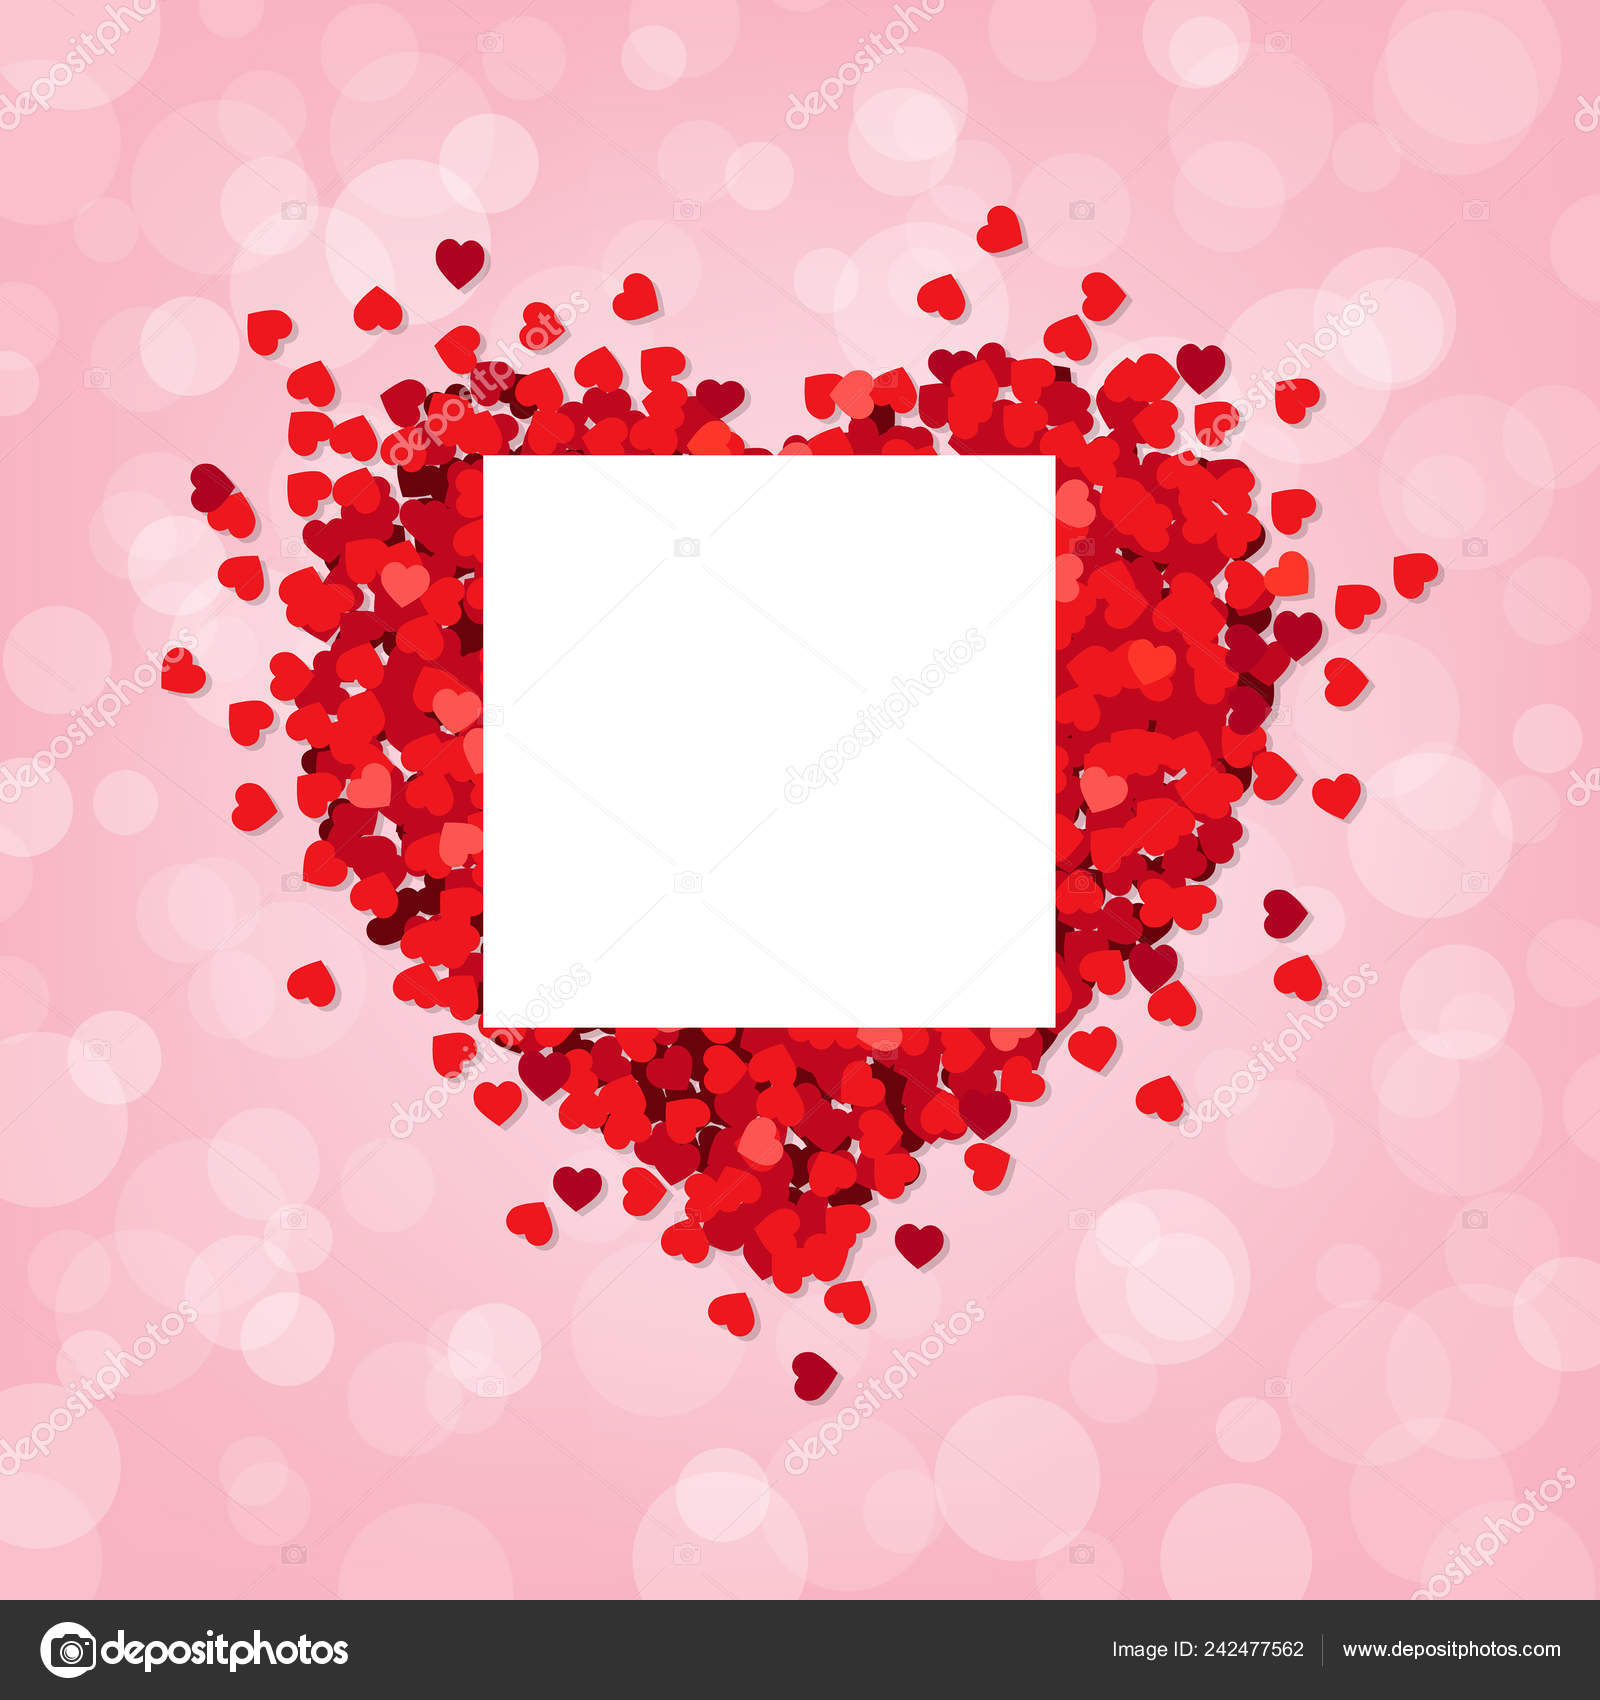 Red Heart Pink Background Banner Gradient Mesh Vector